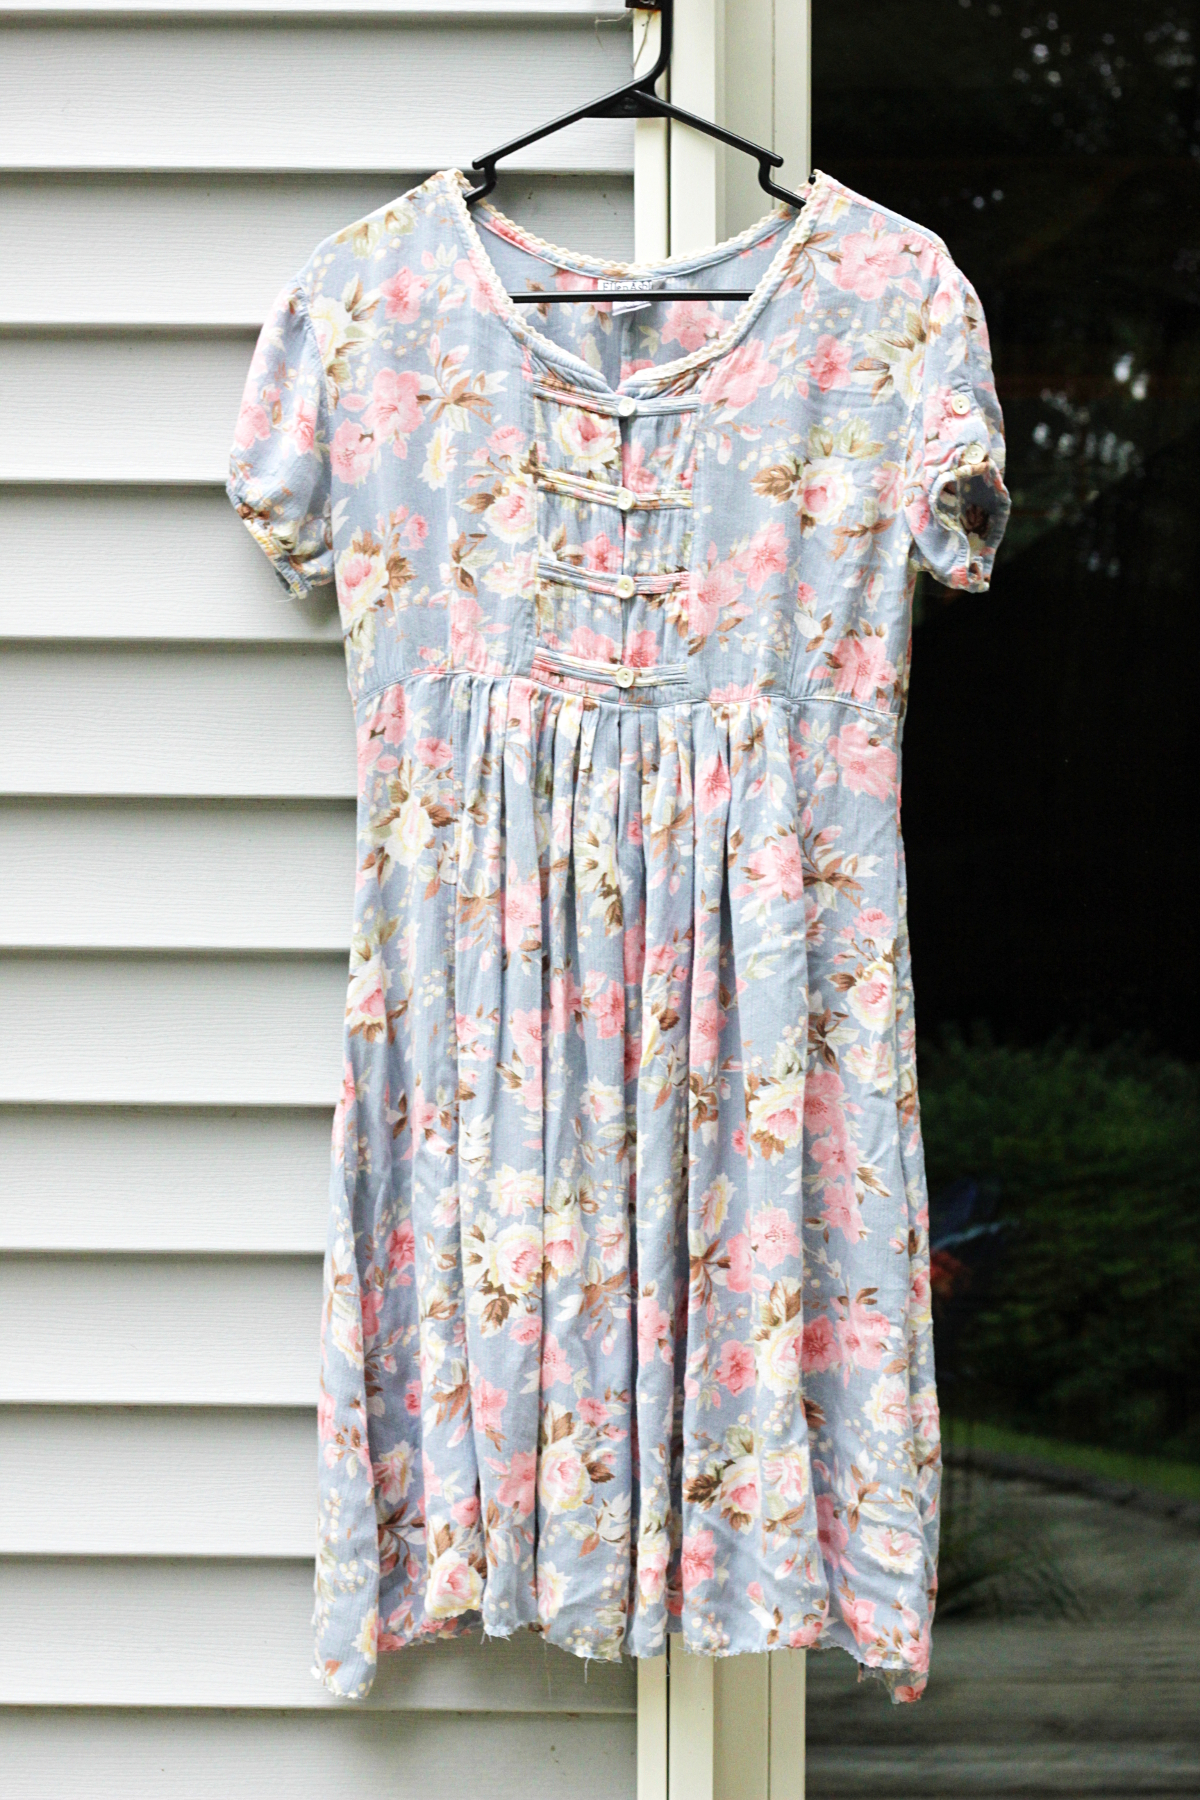 Upcycled Fashion DIY: Pastel Floral Dress